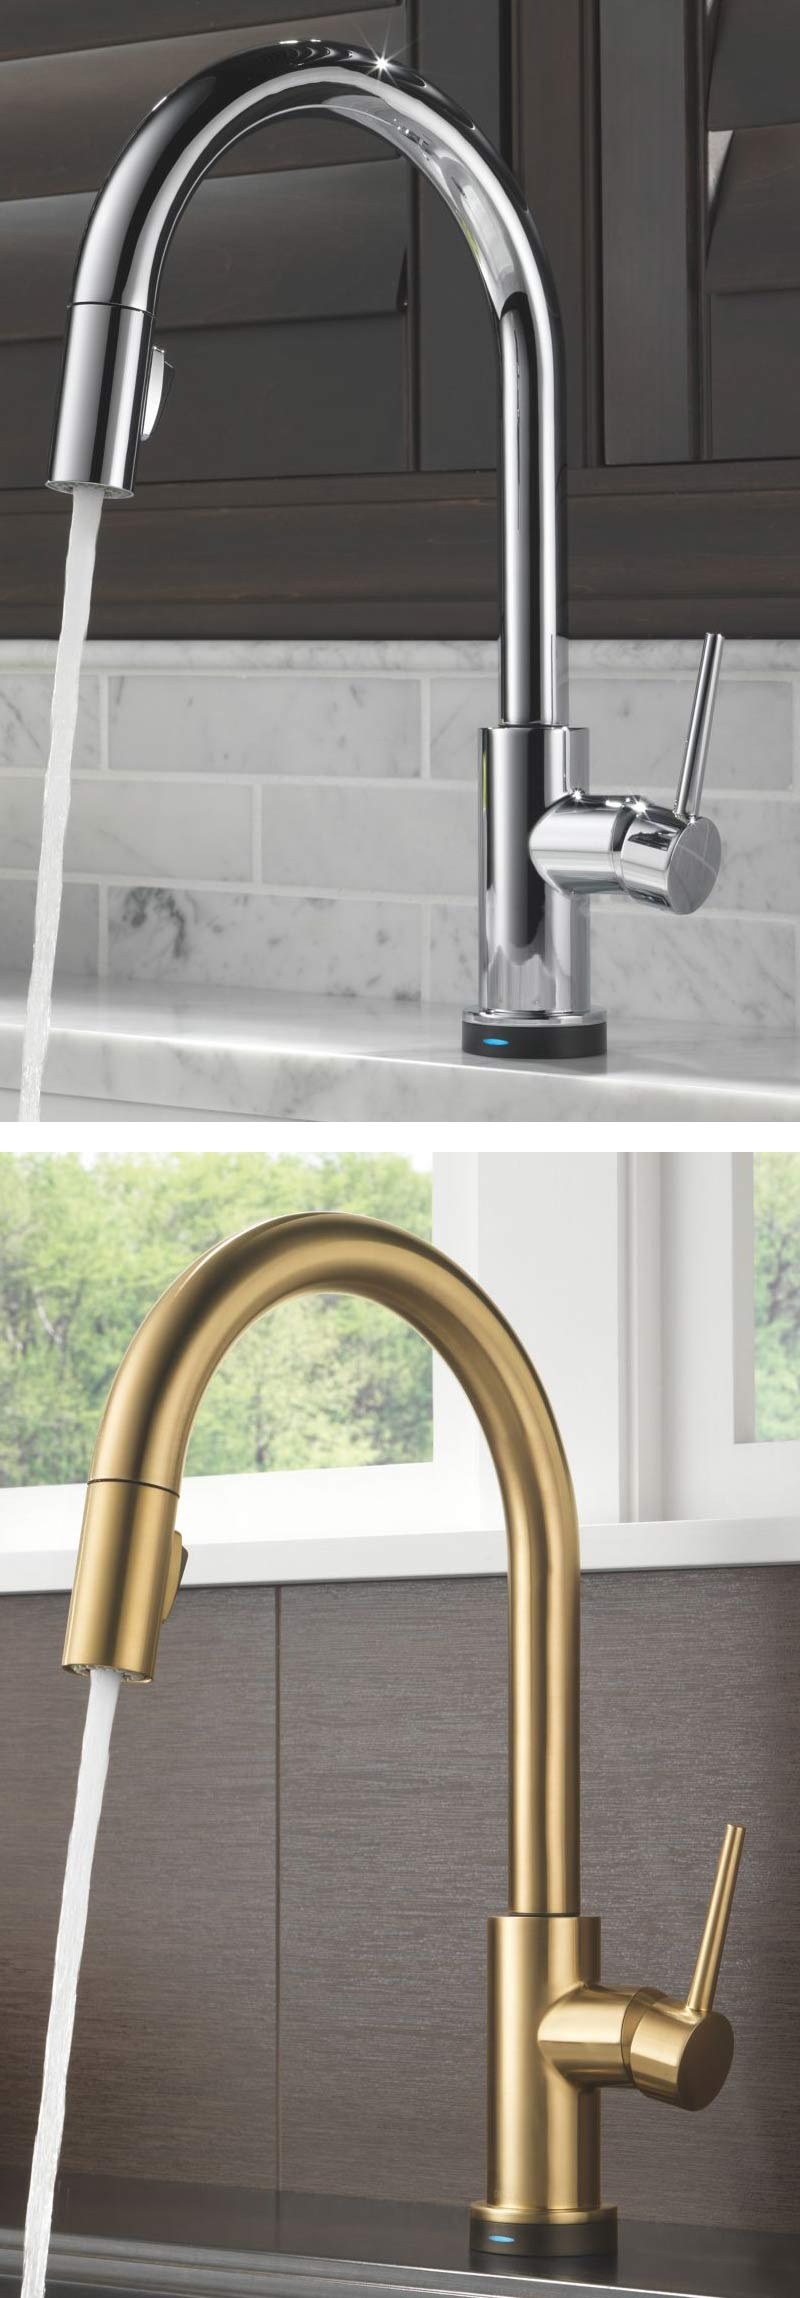 Victorian single handle kitchen faucet with sprayer in venetian bronze - Delta Trinsic Single Handle Single Hole Pull Down Kitchen